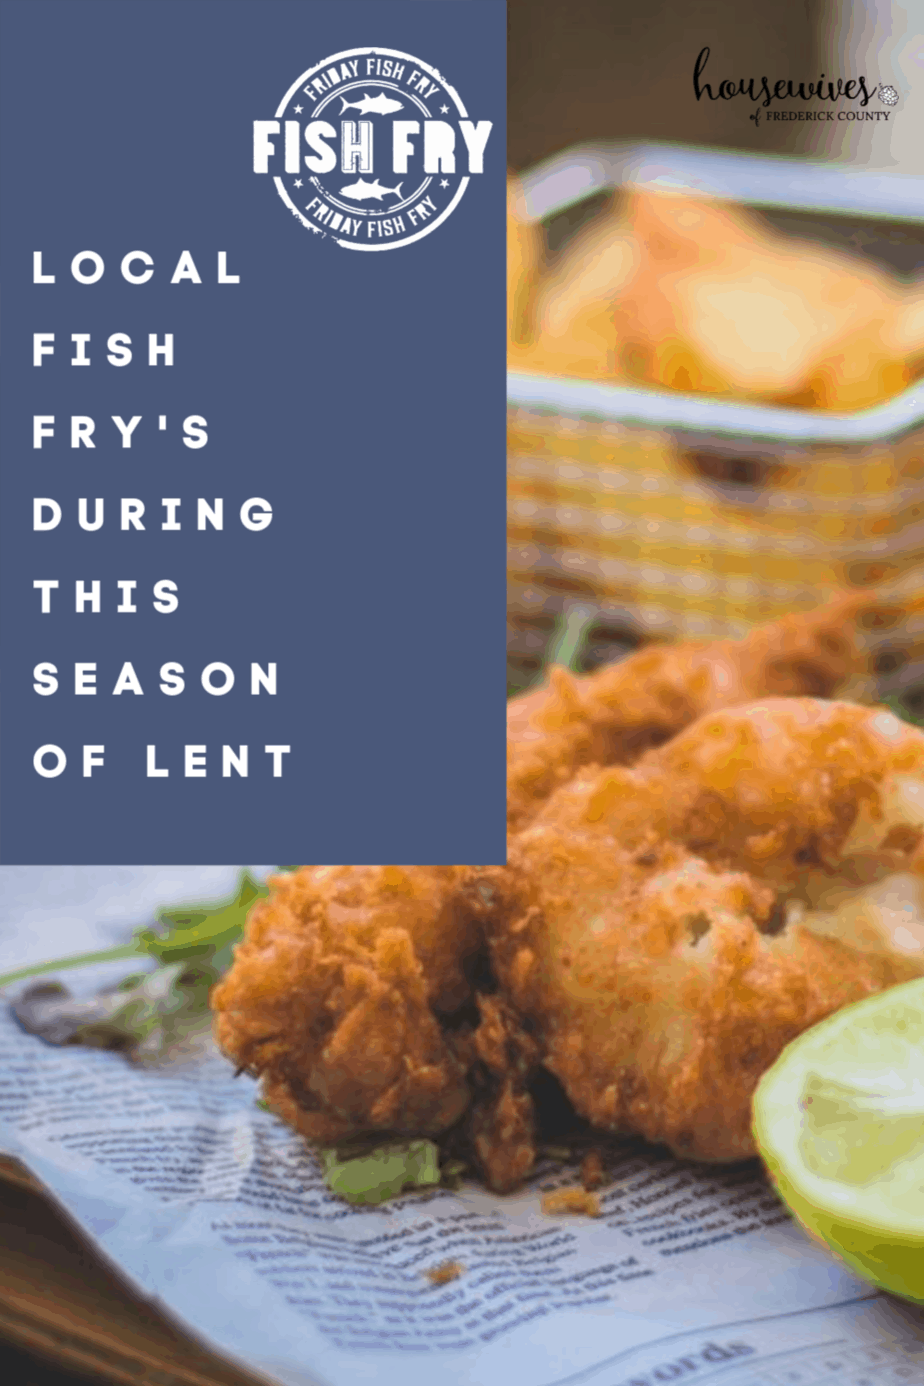 Local Fish Fry's During This Season of Lent